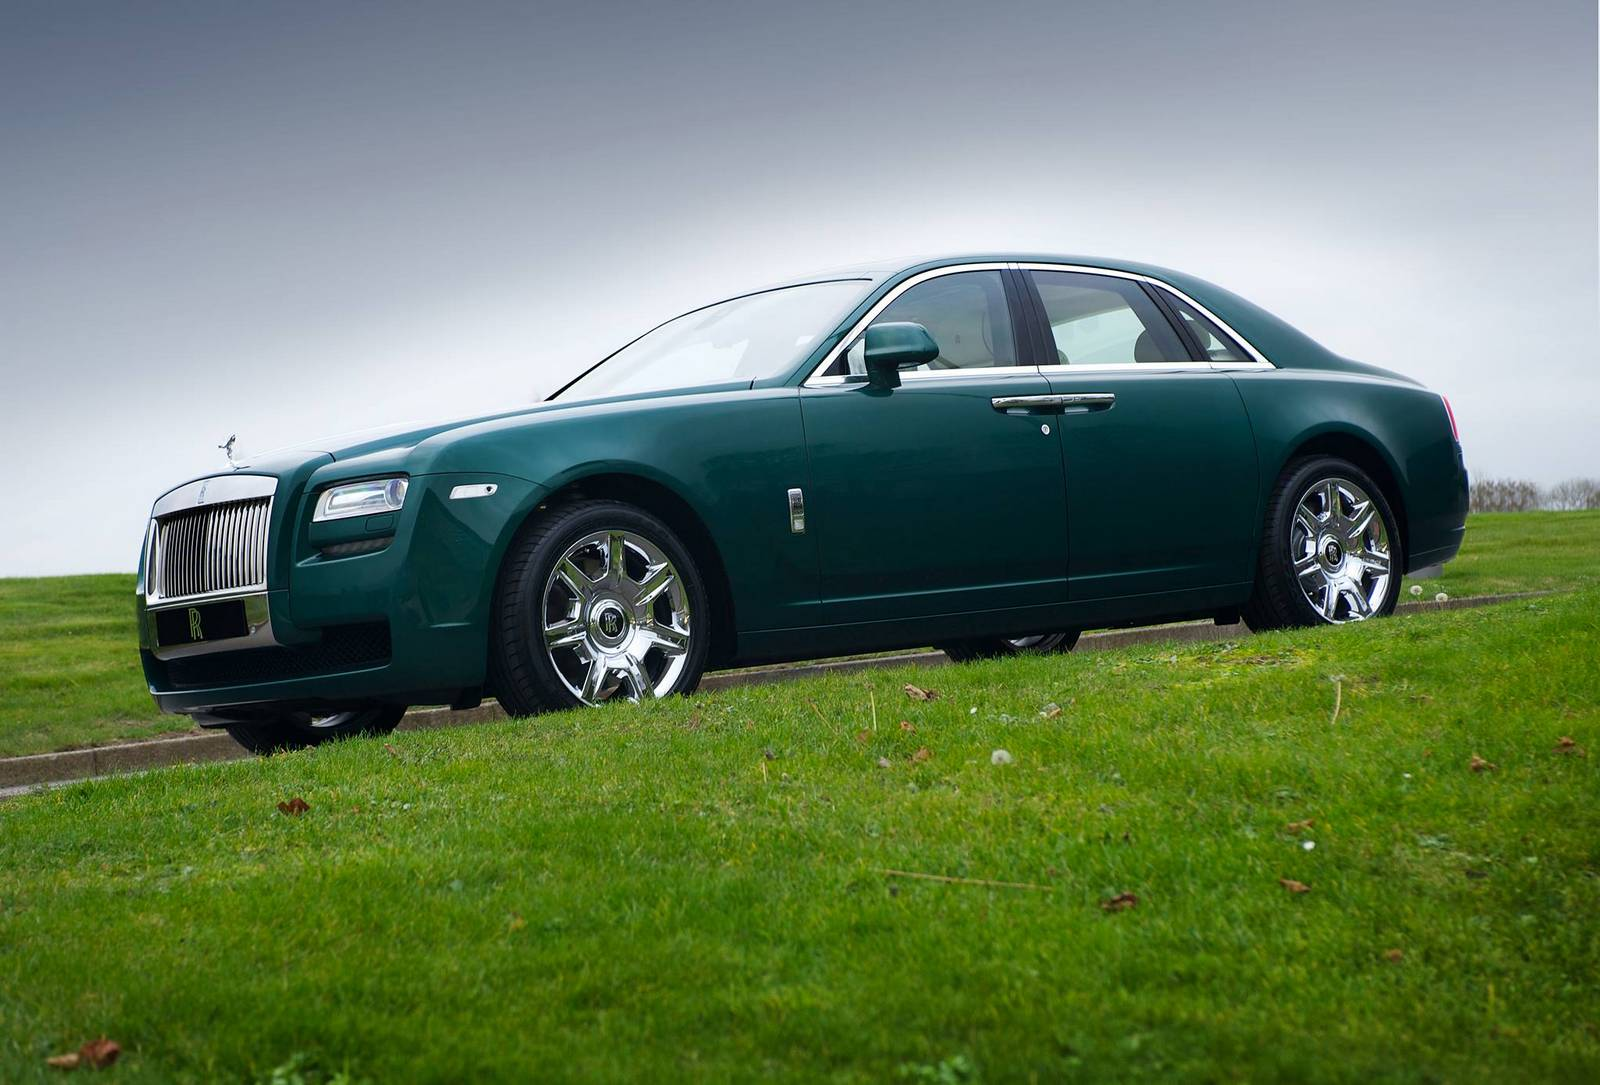 Photo Of The Day: Brooklands Green Rolls-Royce Ghost